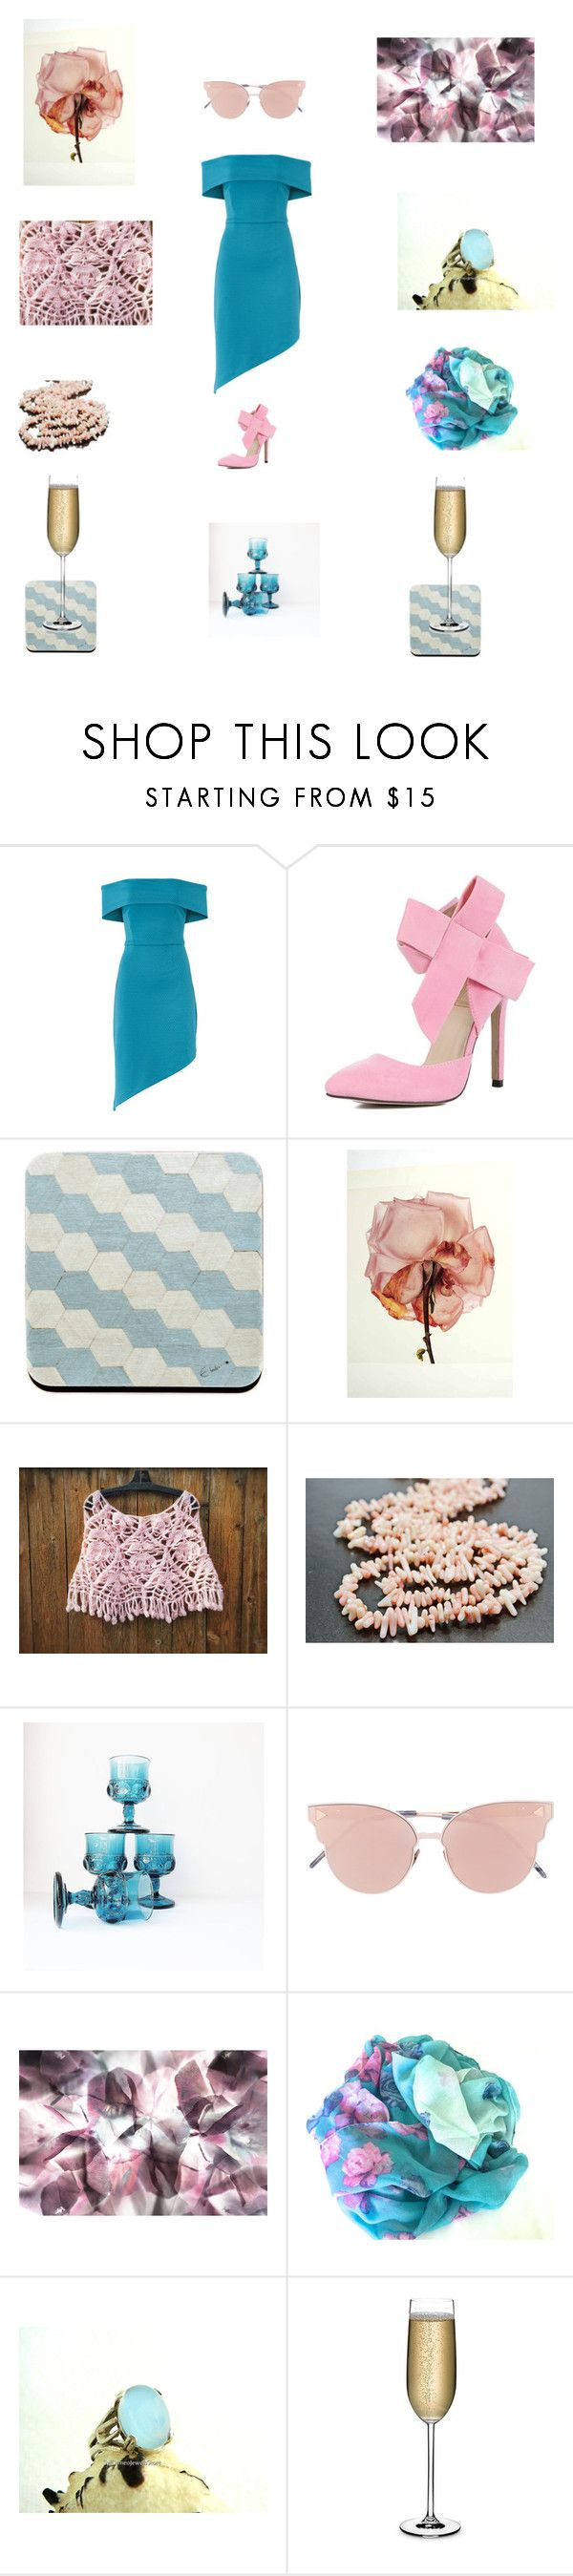 Pastel pinks and blues by einder on Polyvore featuring interior, interiors, interior design, home, home decor, interior decorating, Nude and So.Ya